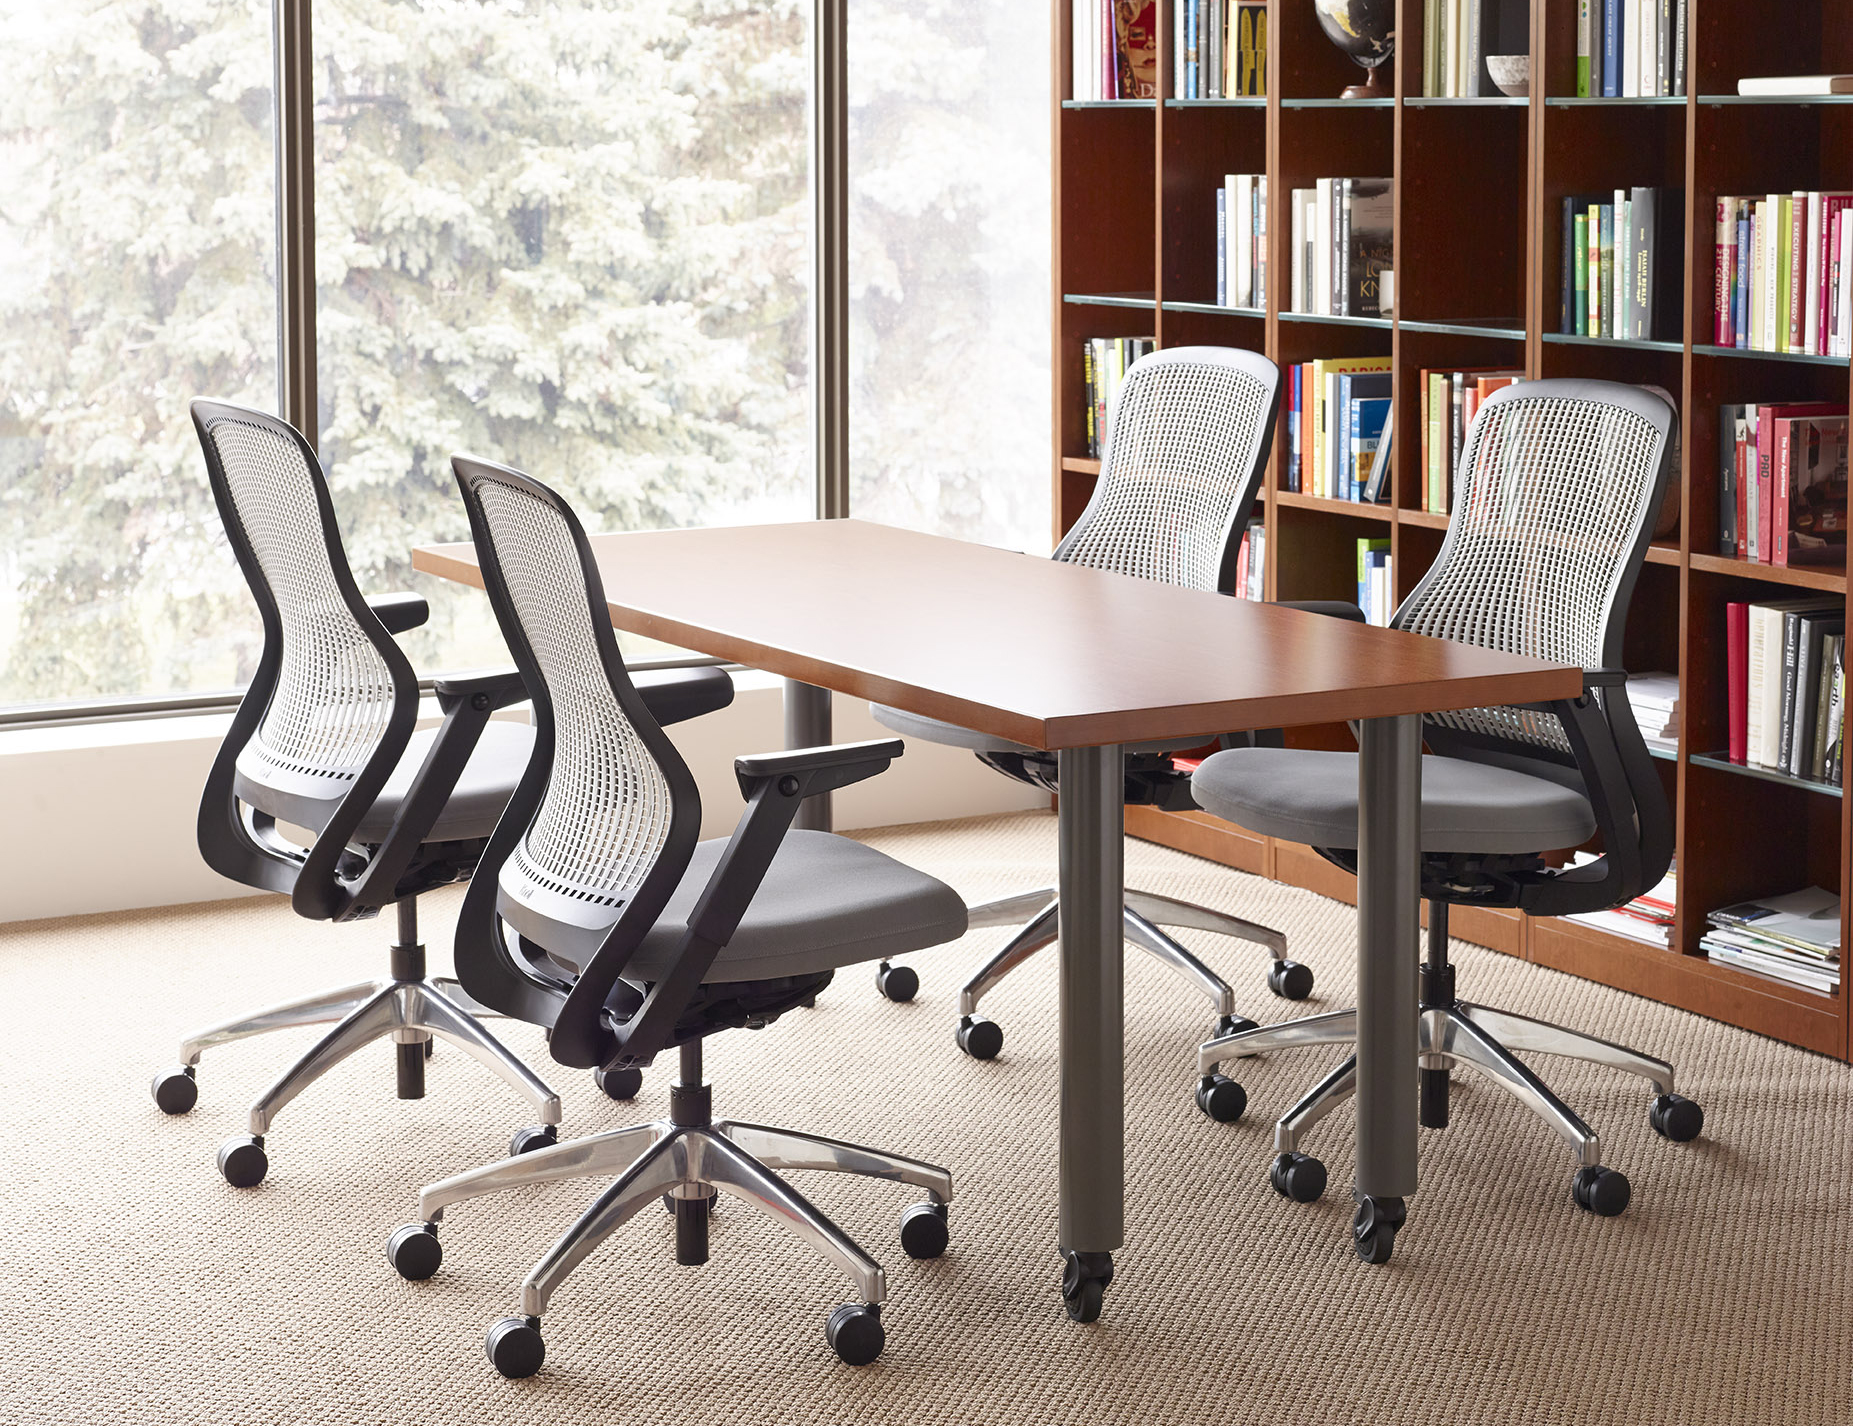 Reff Profiles Activity Space ReGeneration Chairs